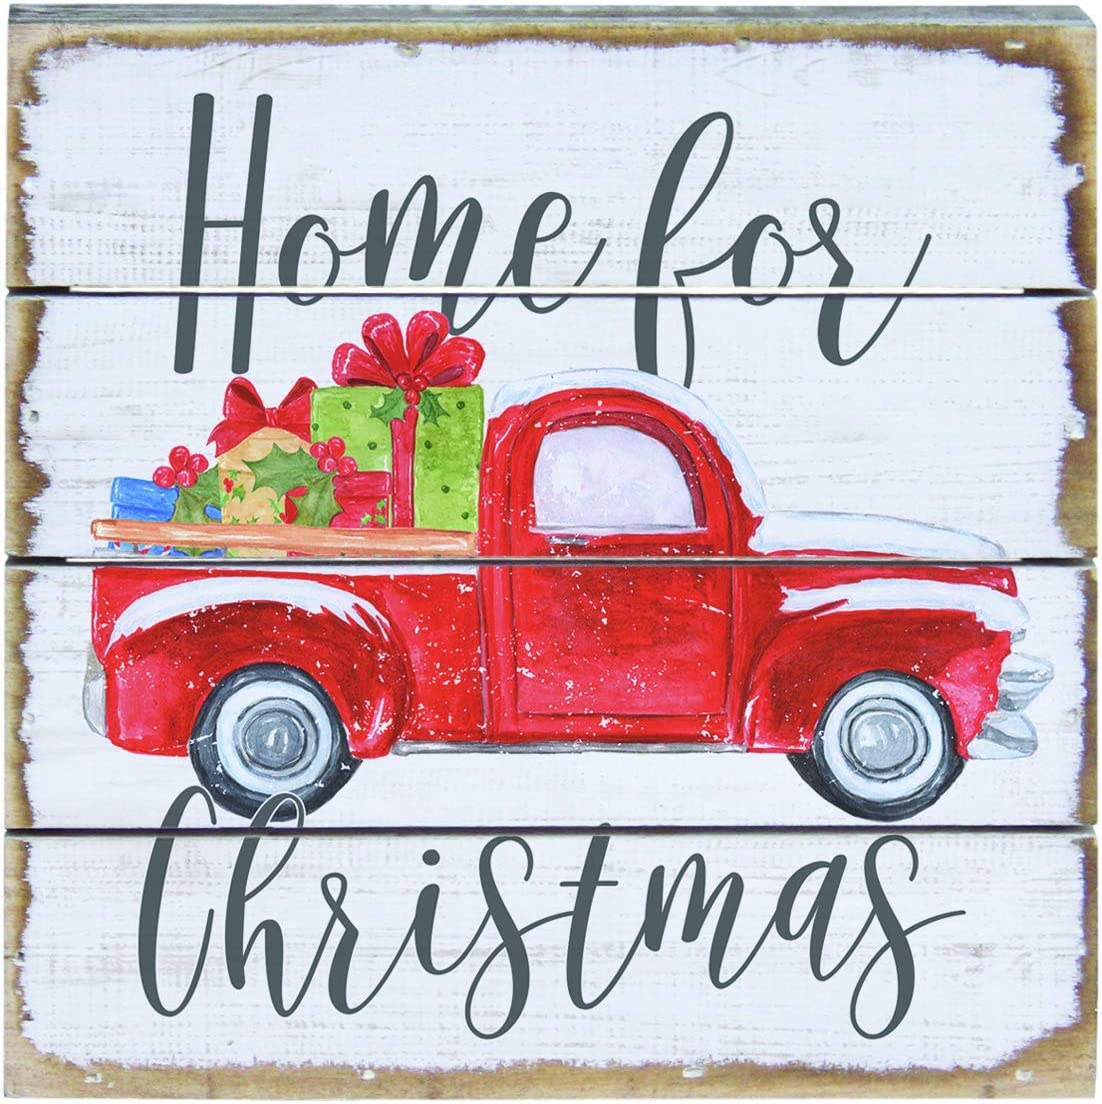 ''Home for Christmas'' Rustic Vintage Red Farm Truck Wood Pallet Sign Shelf Decor or Wall Art 6 x 6 Inches